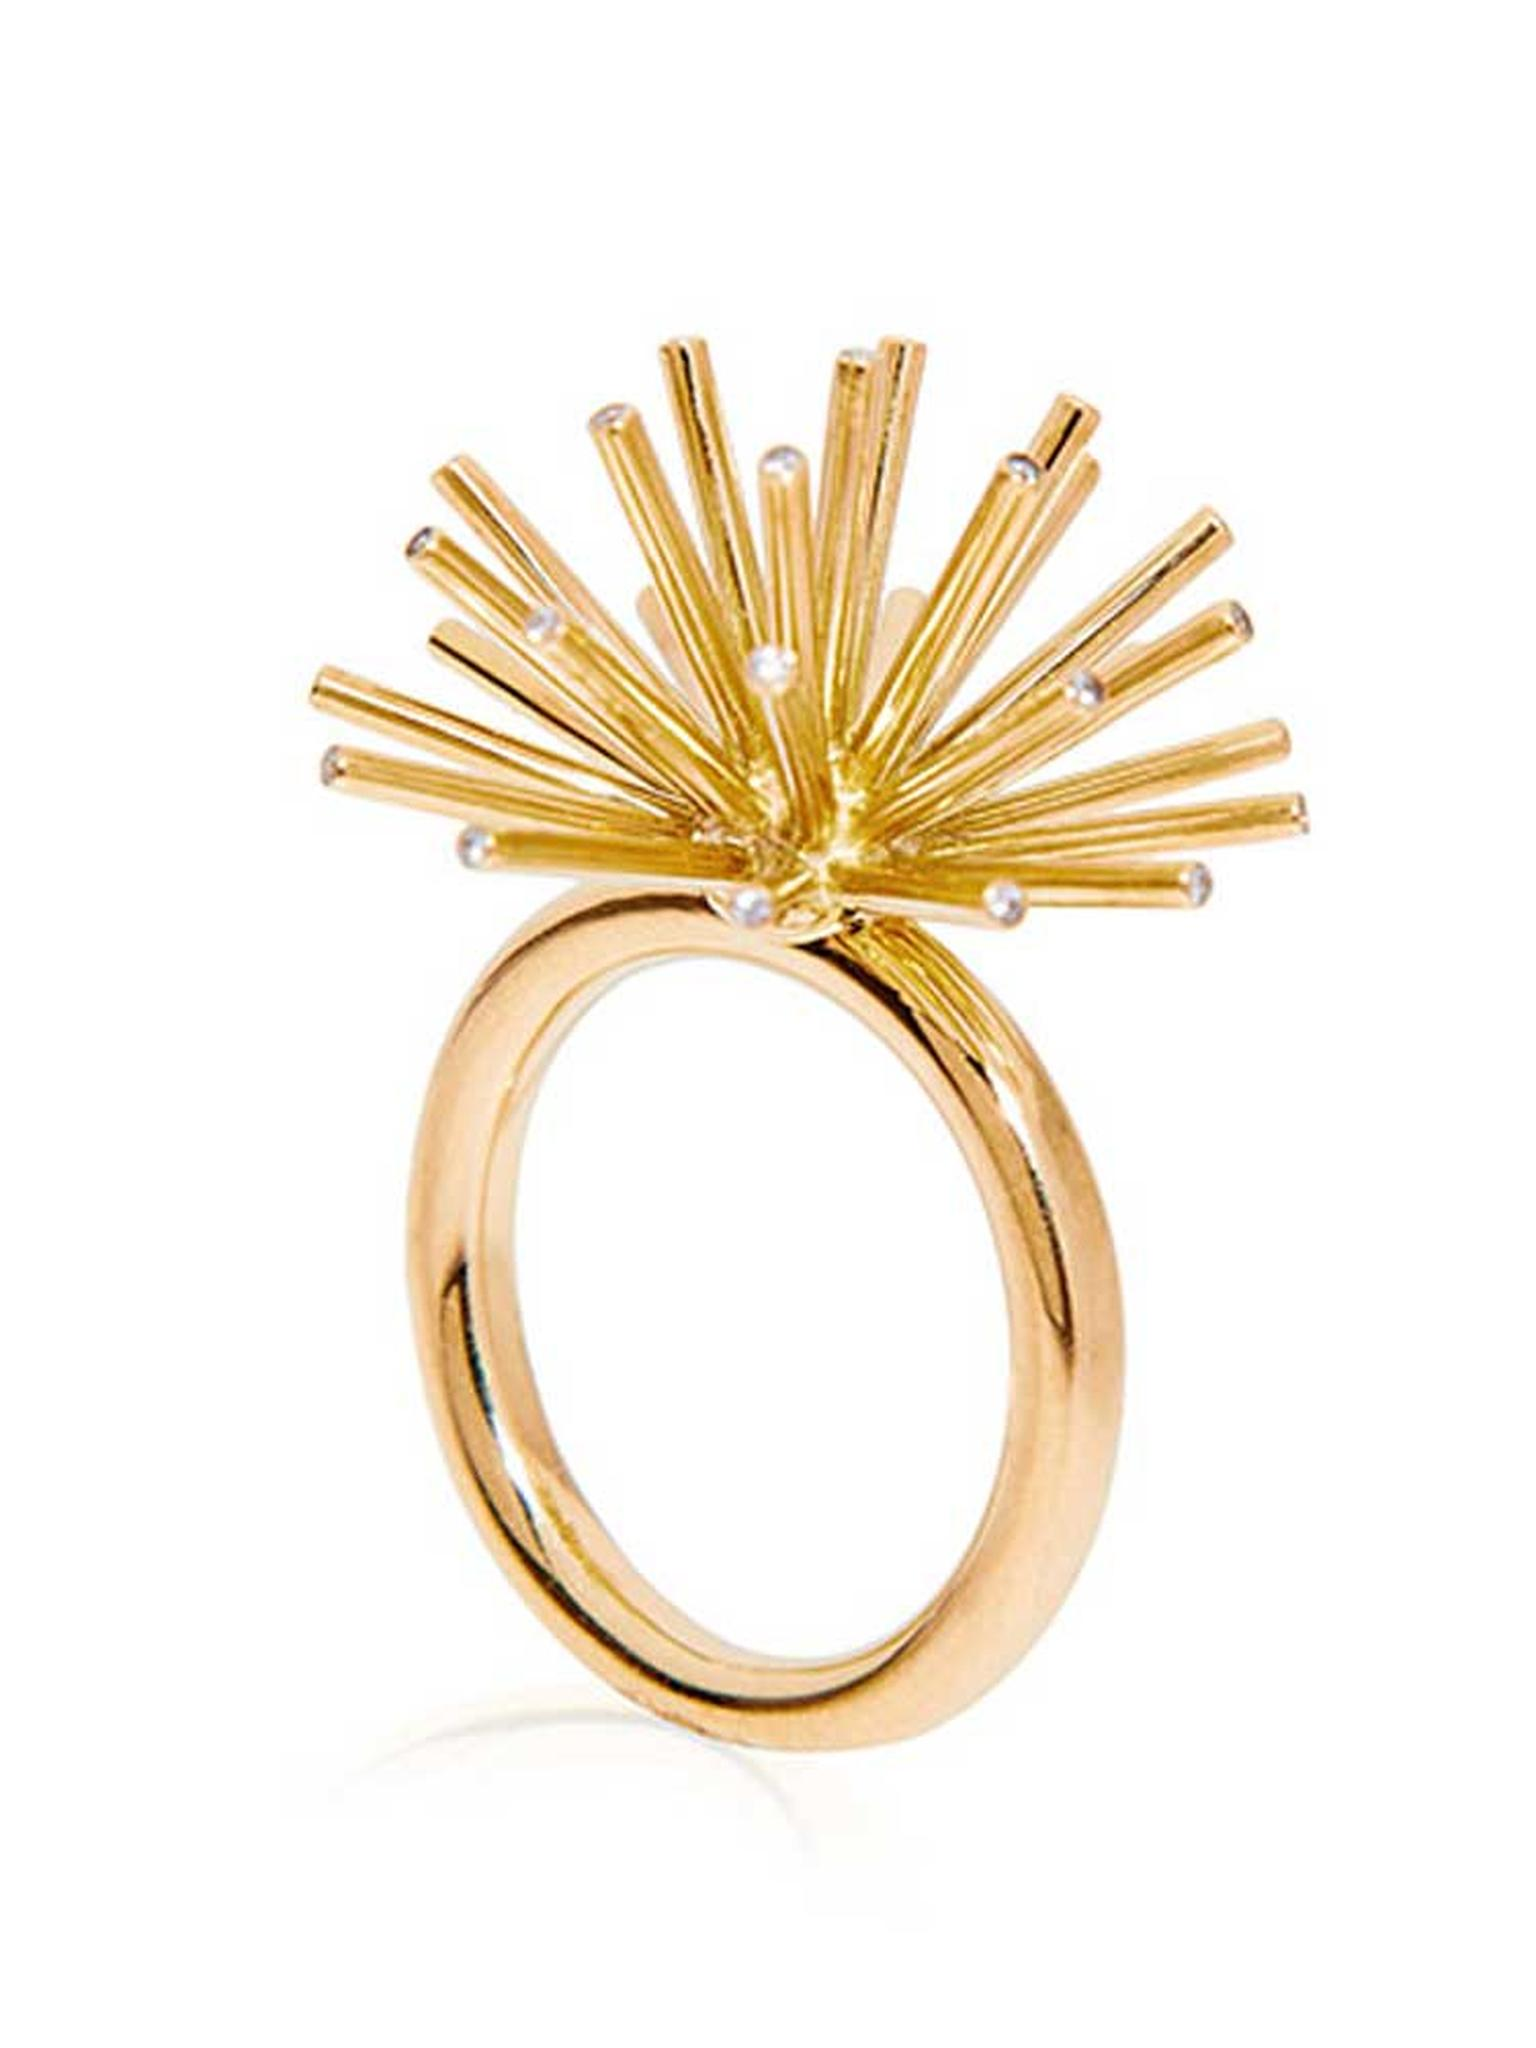 Coléoptère Asterisk ring in gold, available from Moda Operandi.